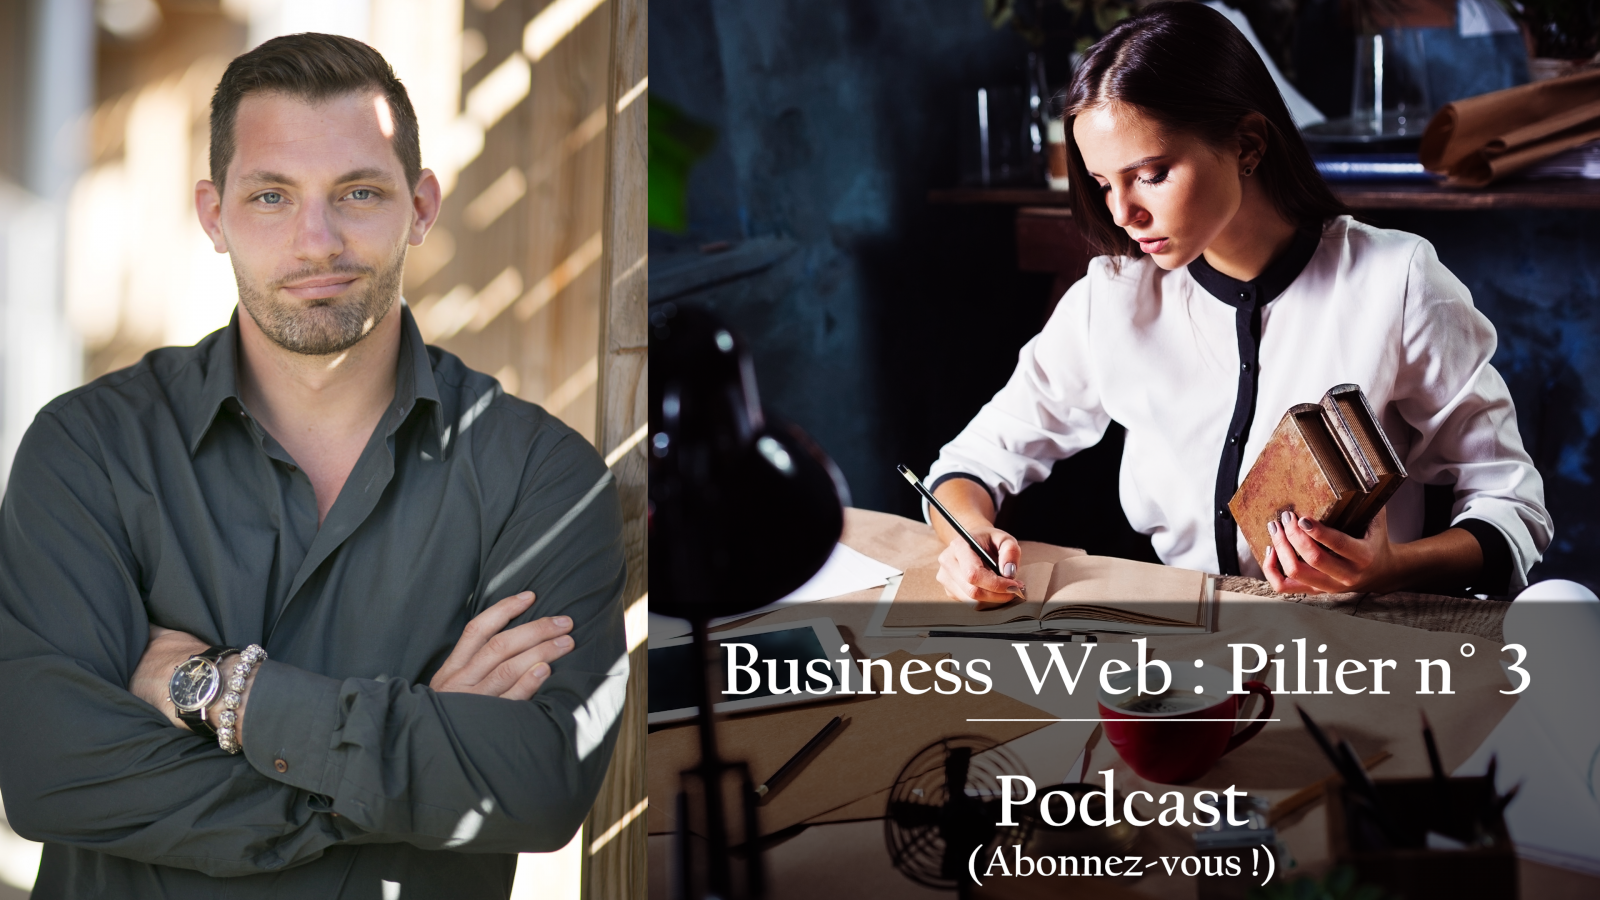 12eme Podcast - Business Web : Pilier n°3